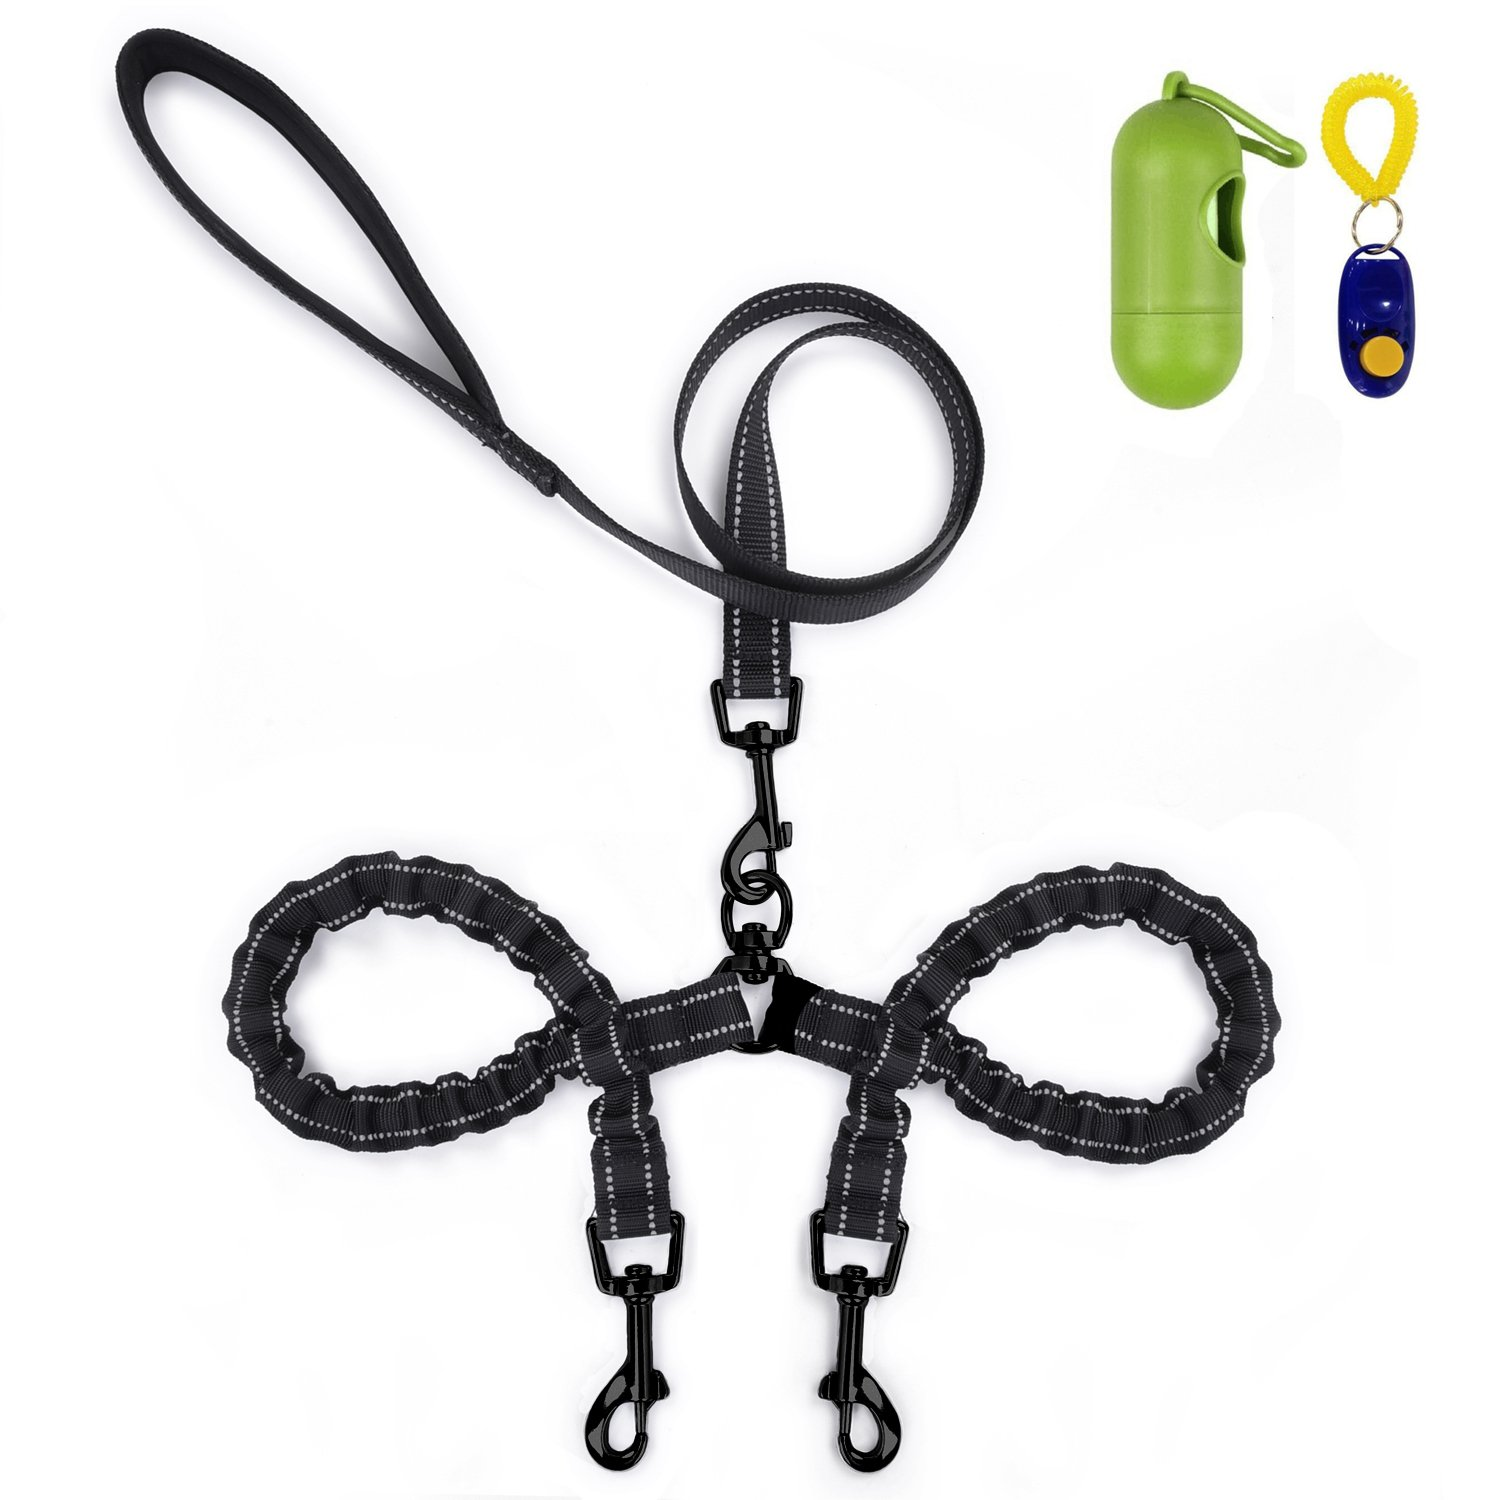 Dual Dog Leash, Double Dog Leash,360° Swivel No Tangle Double Dog Walking & Training Leash, Comfortable Shock Absorbing Reflective Bungee for Medium/Small Dogs with waste bag dispenser & clicker